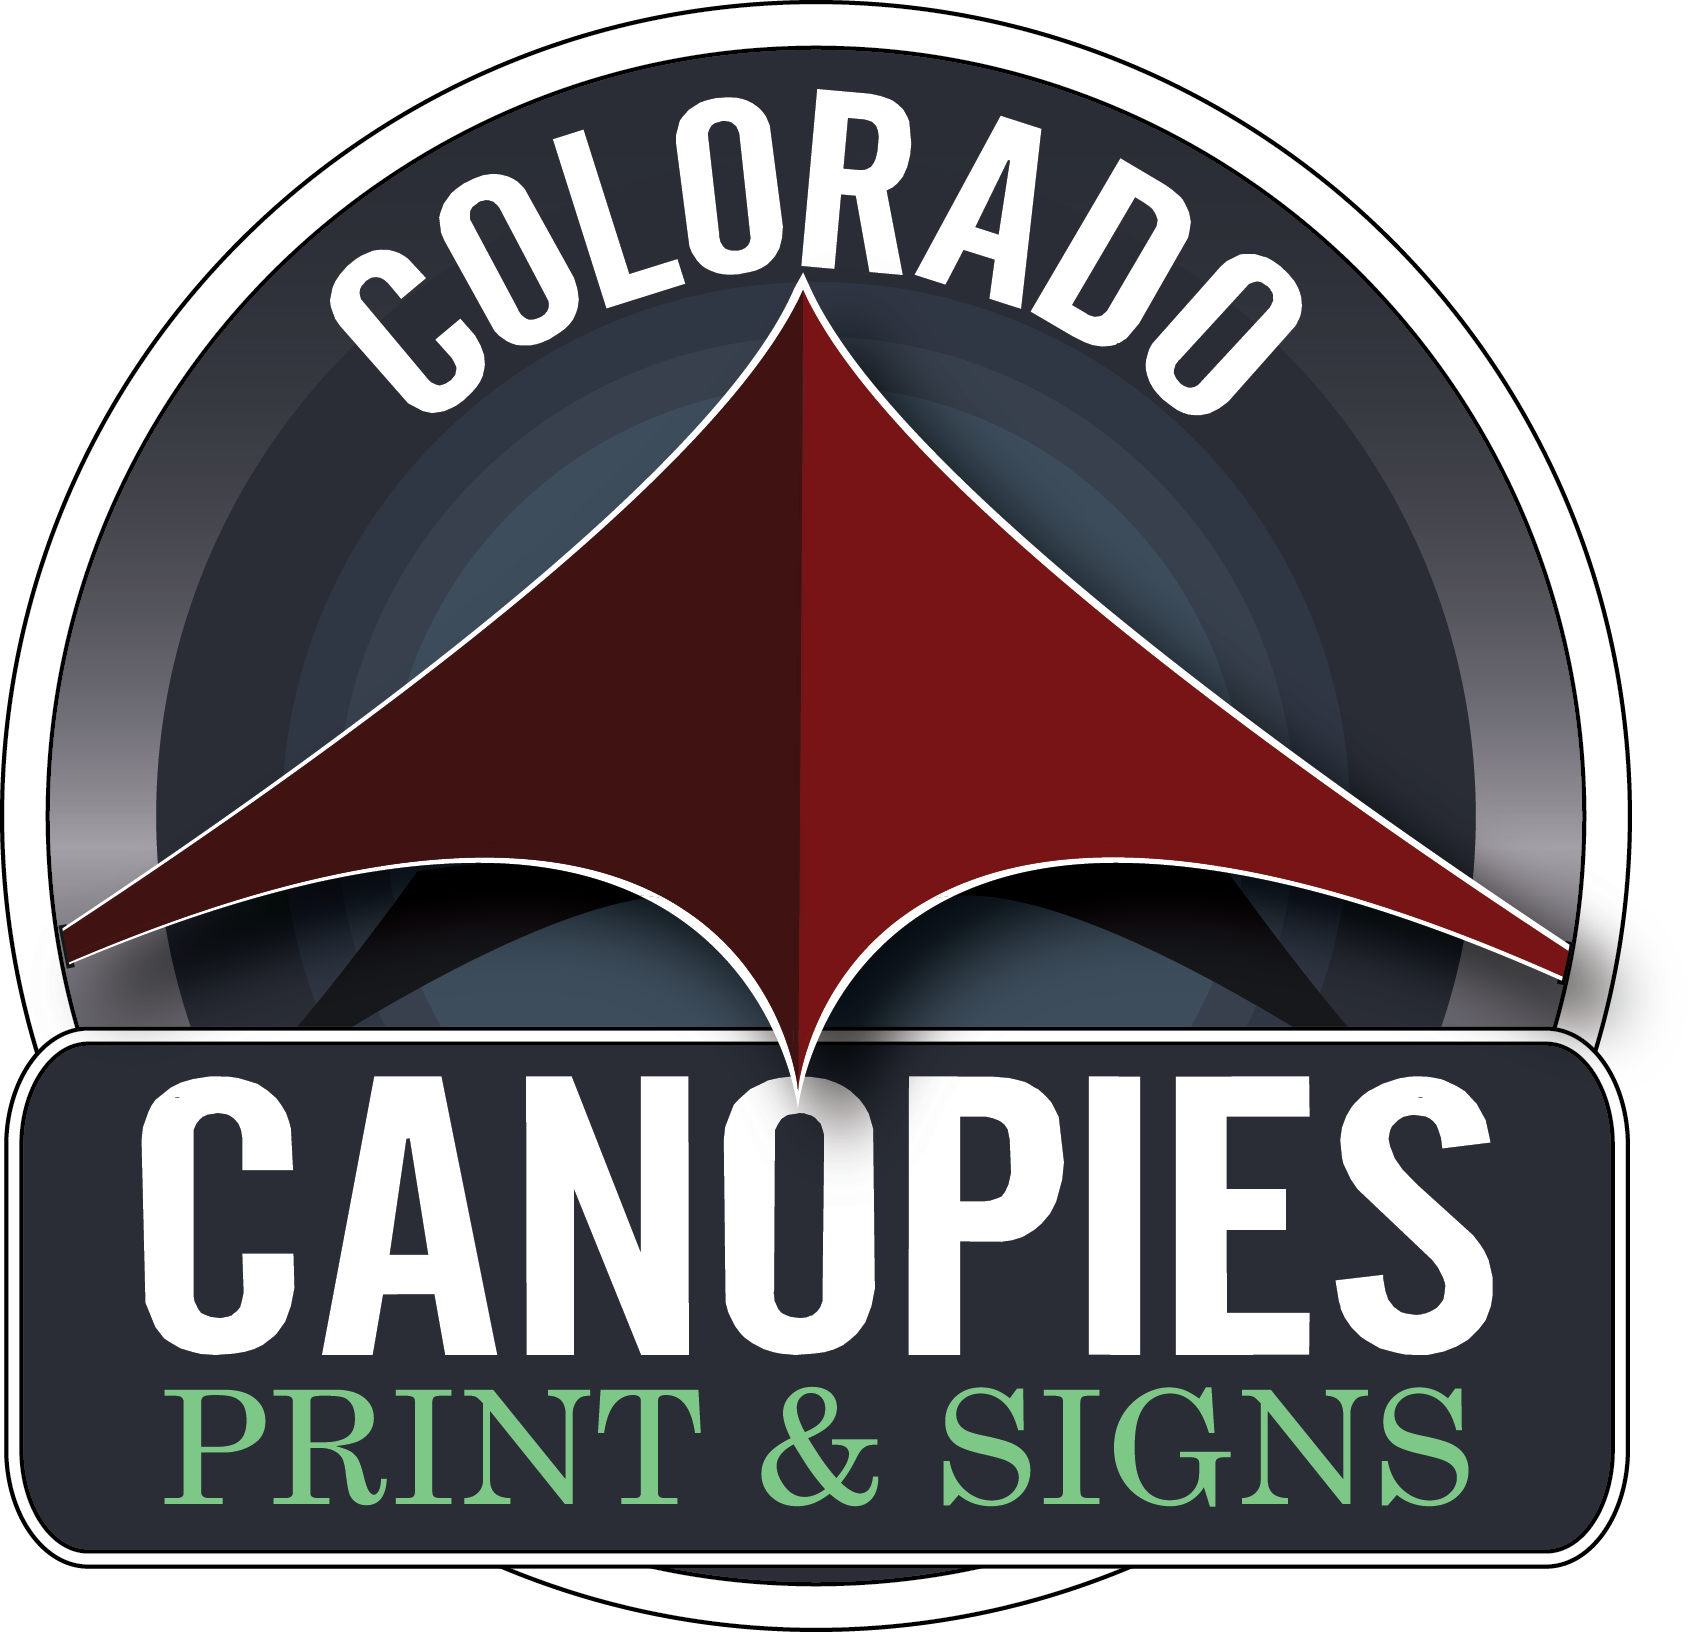 Colorado Canopies